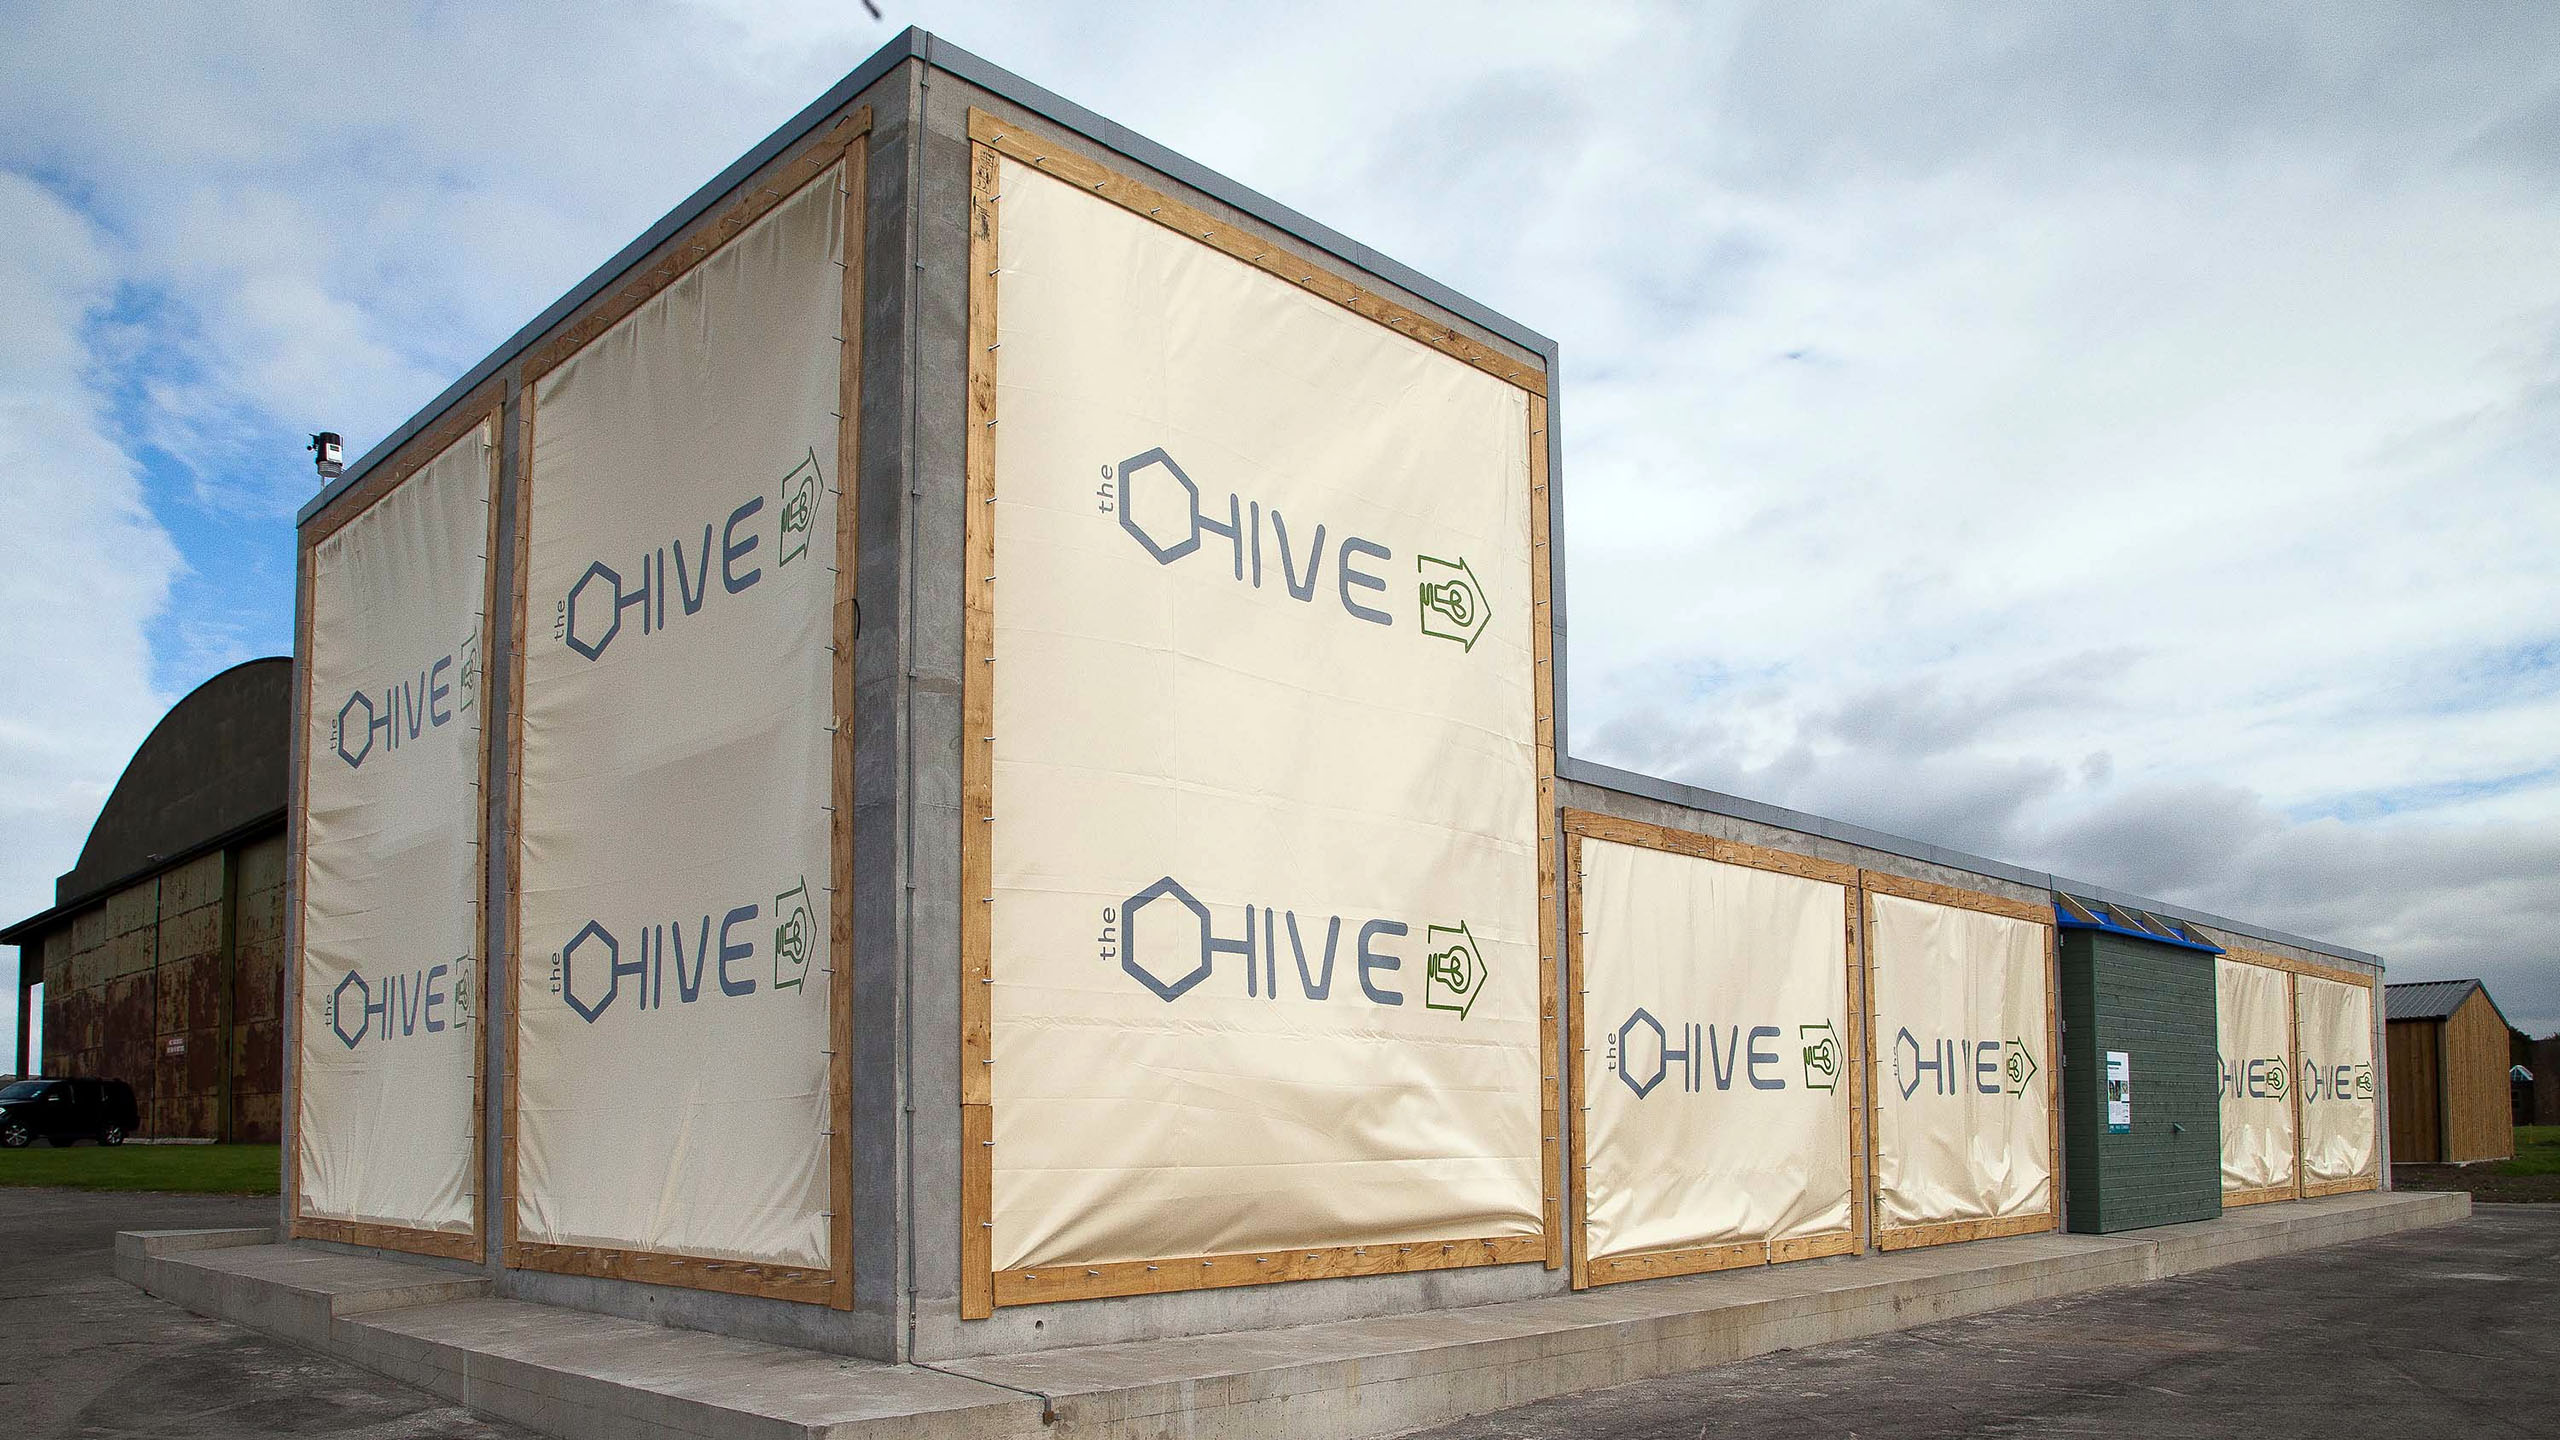 The HIVE facility under construction